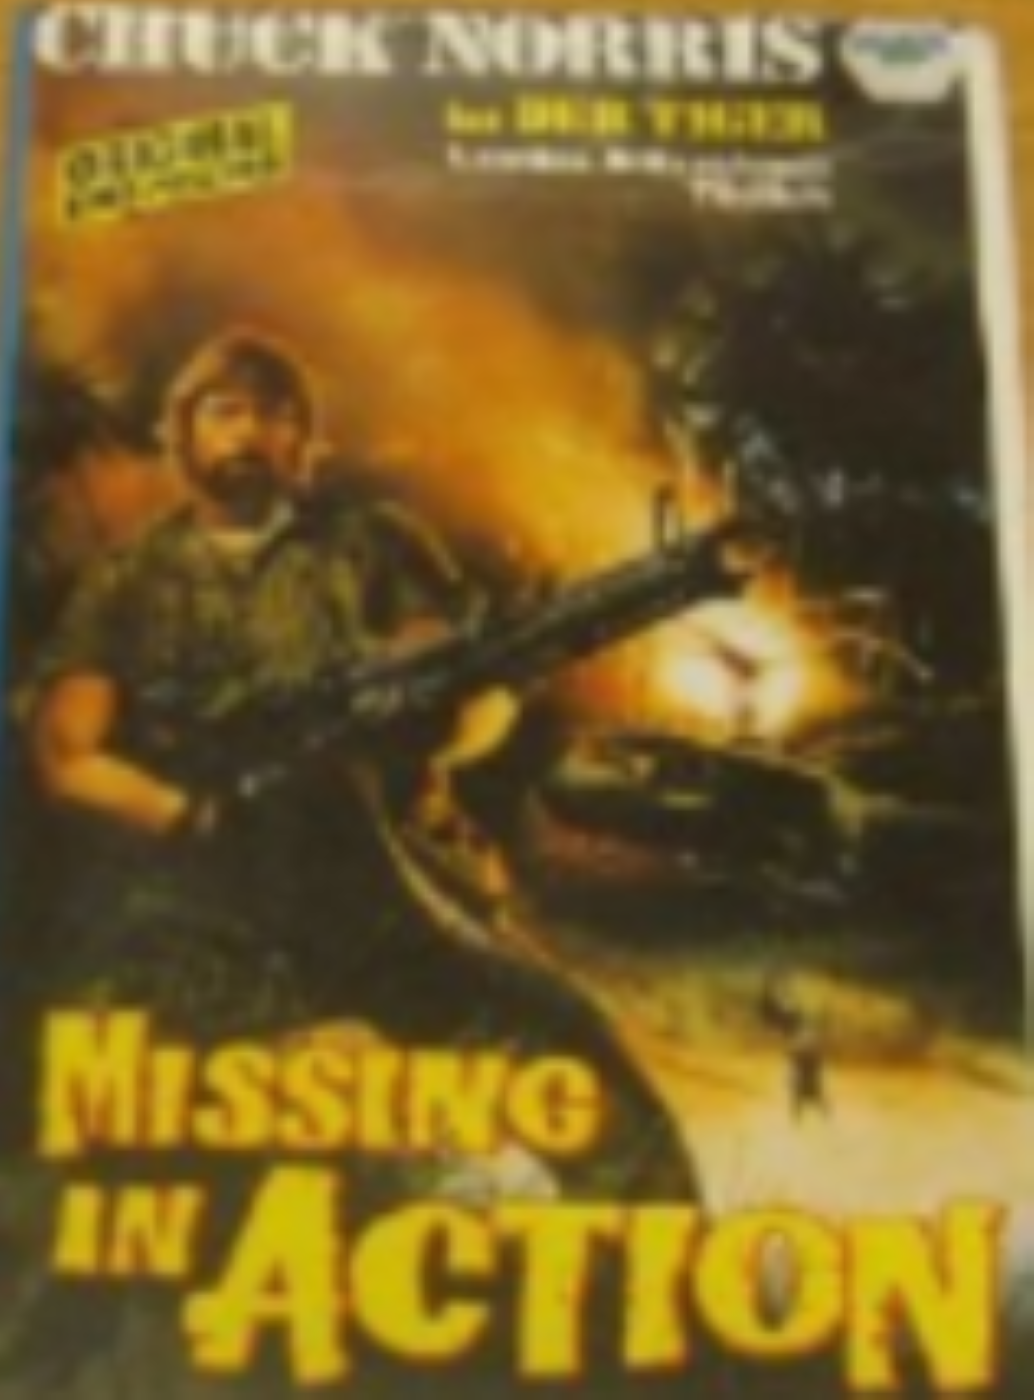 Missing in Action Vhs